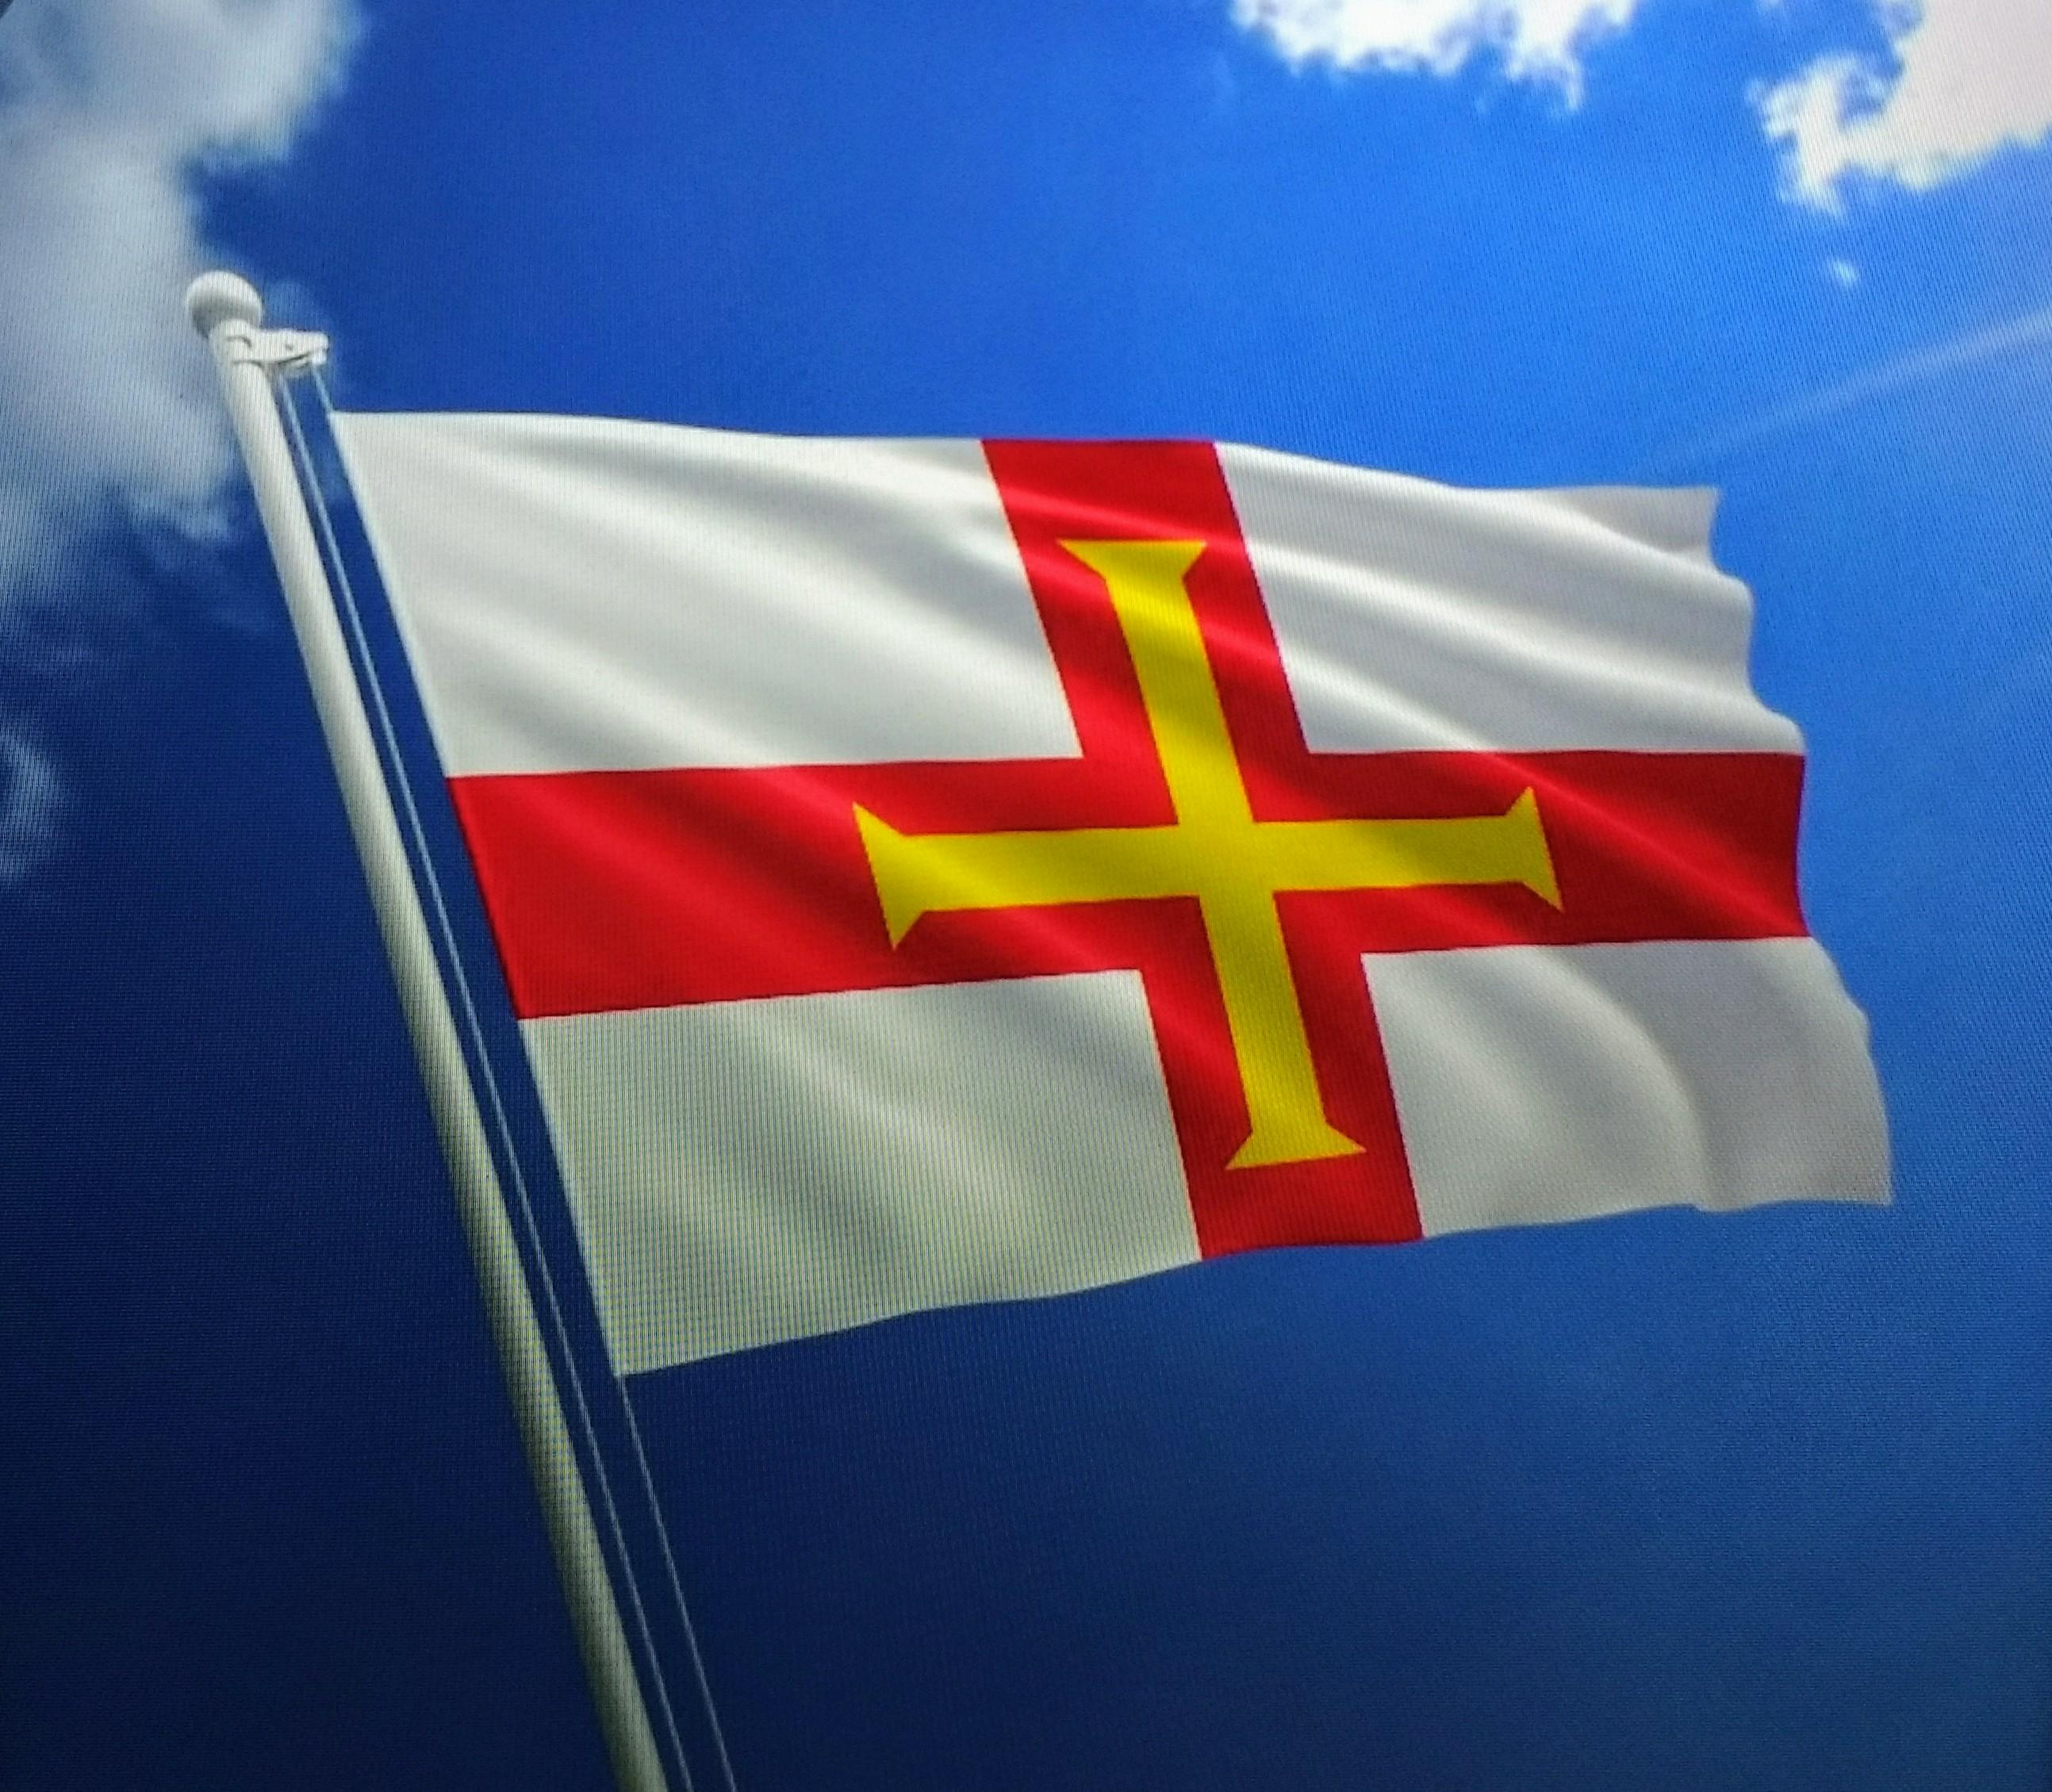 The Guernsey flag flies defiantly